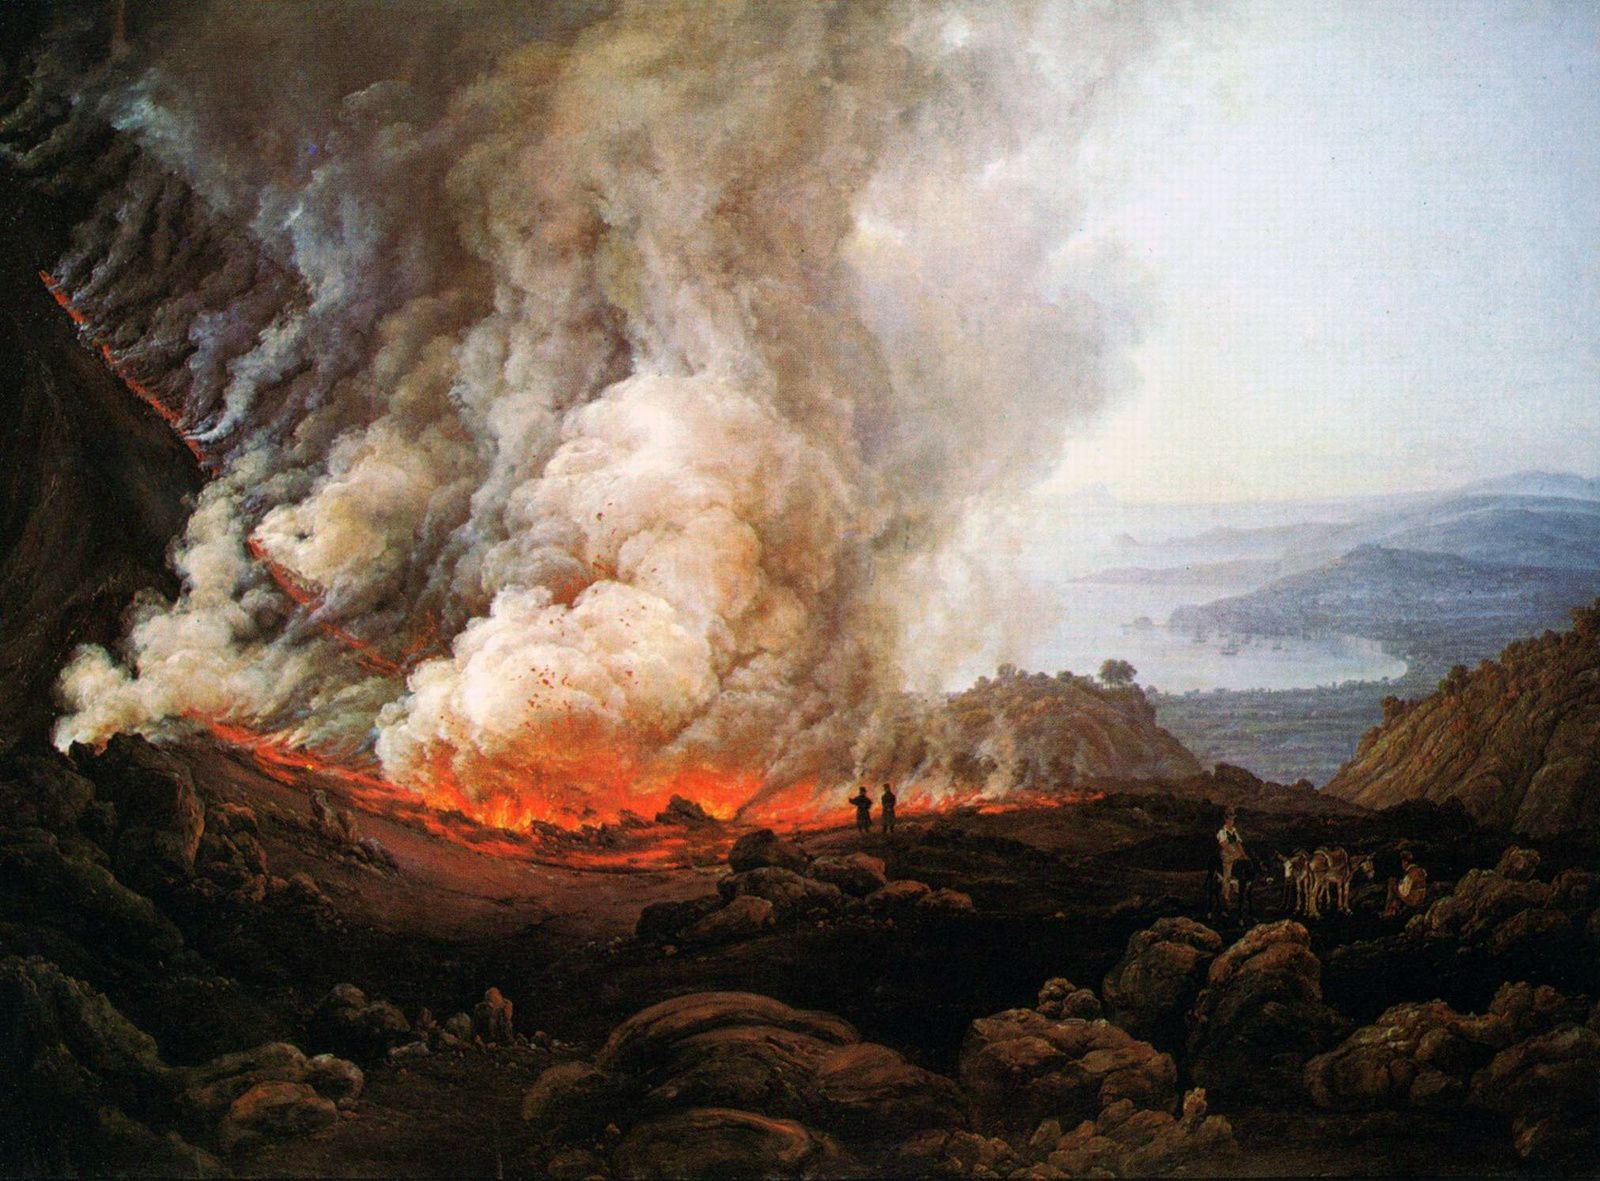 """""""View of Vesuvius in eruption"""" in 1920 - Oil on canvas work by J.C. Dahl (1921) - kept at the Städel Art Institute and municipal gallery"""